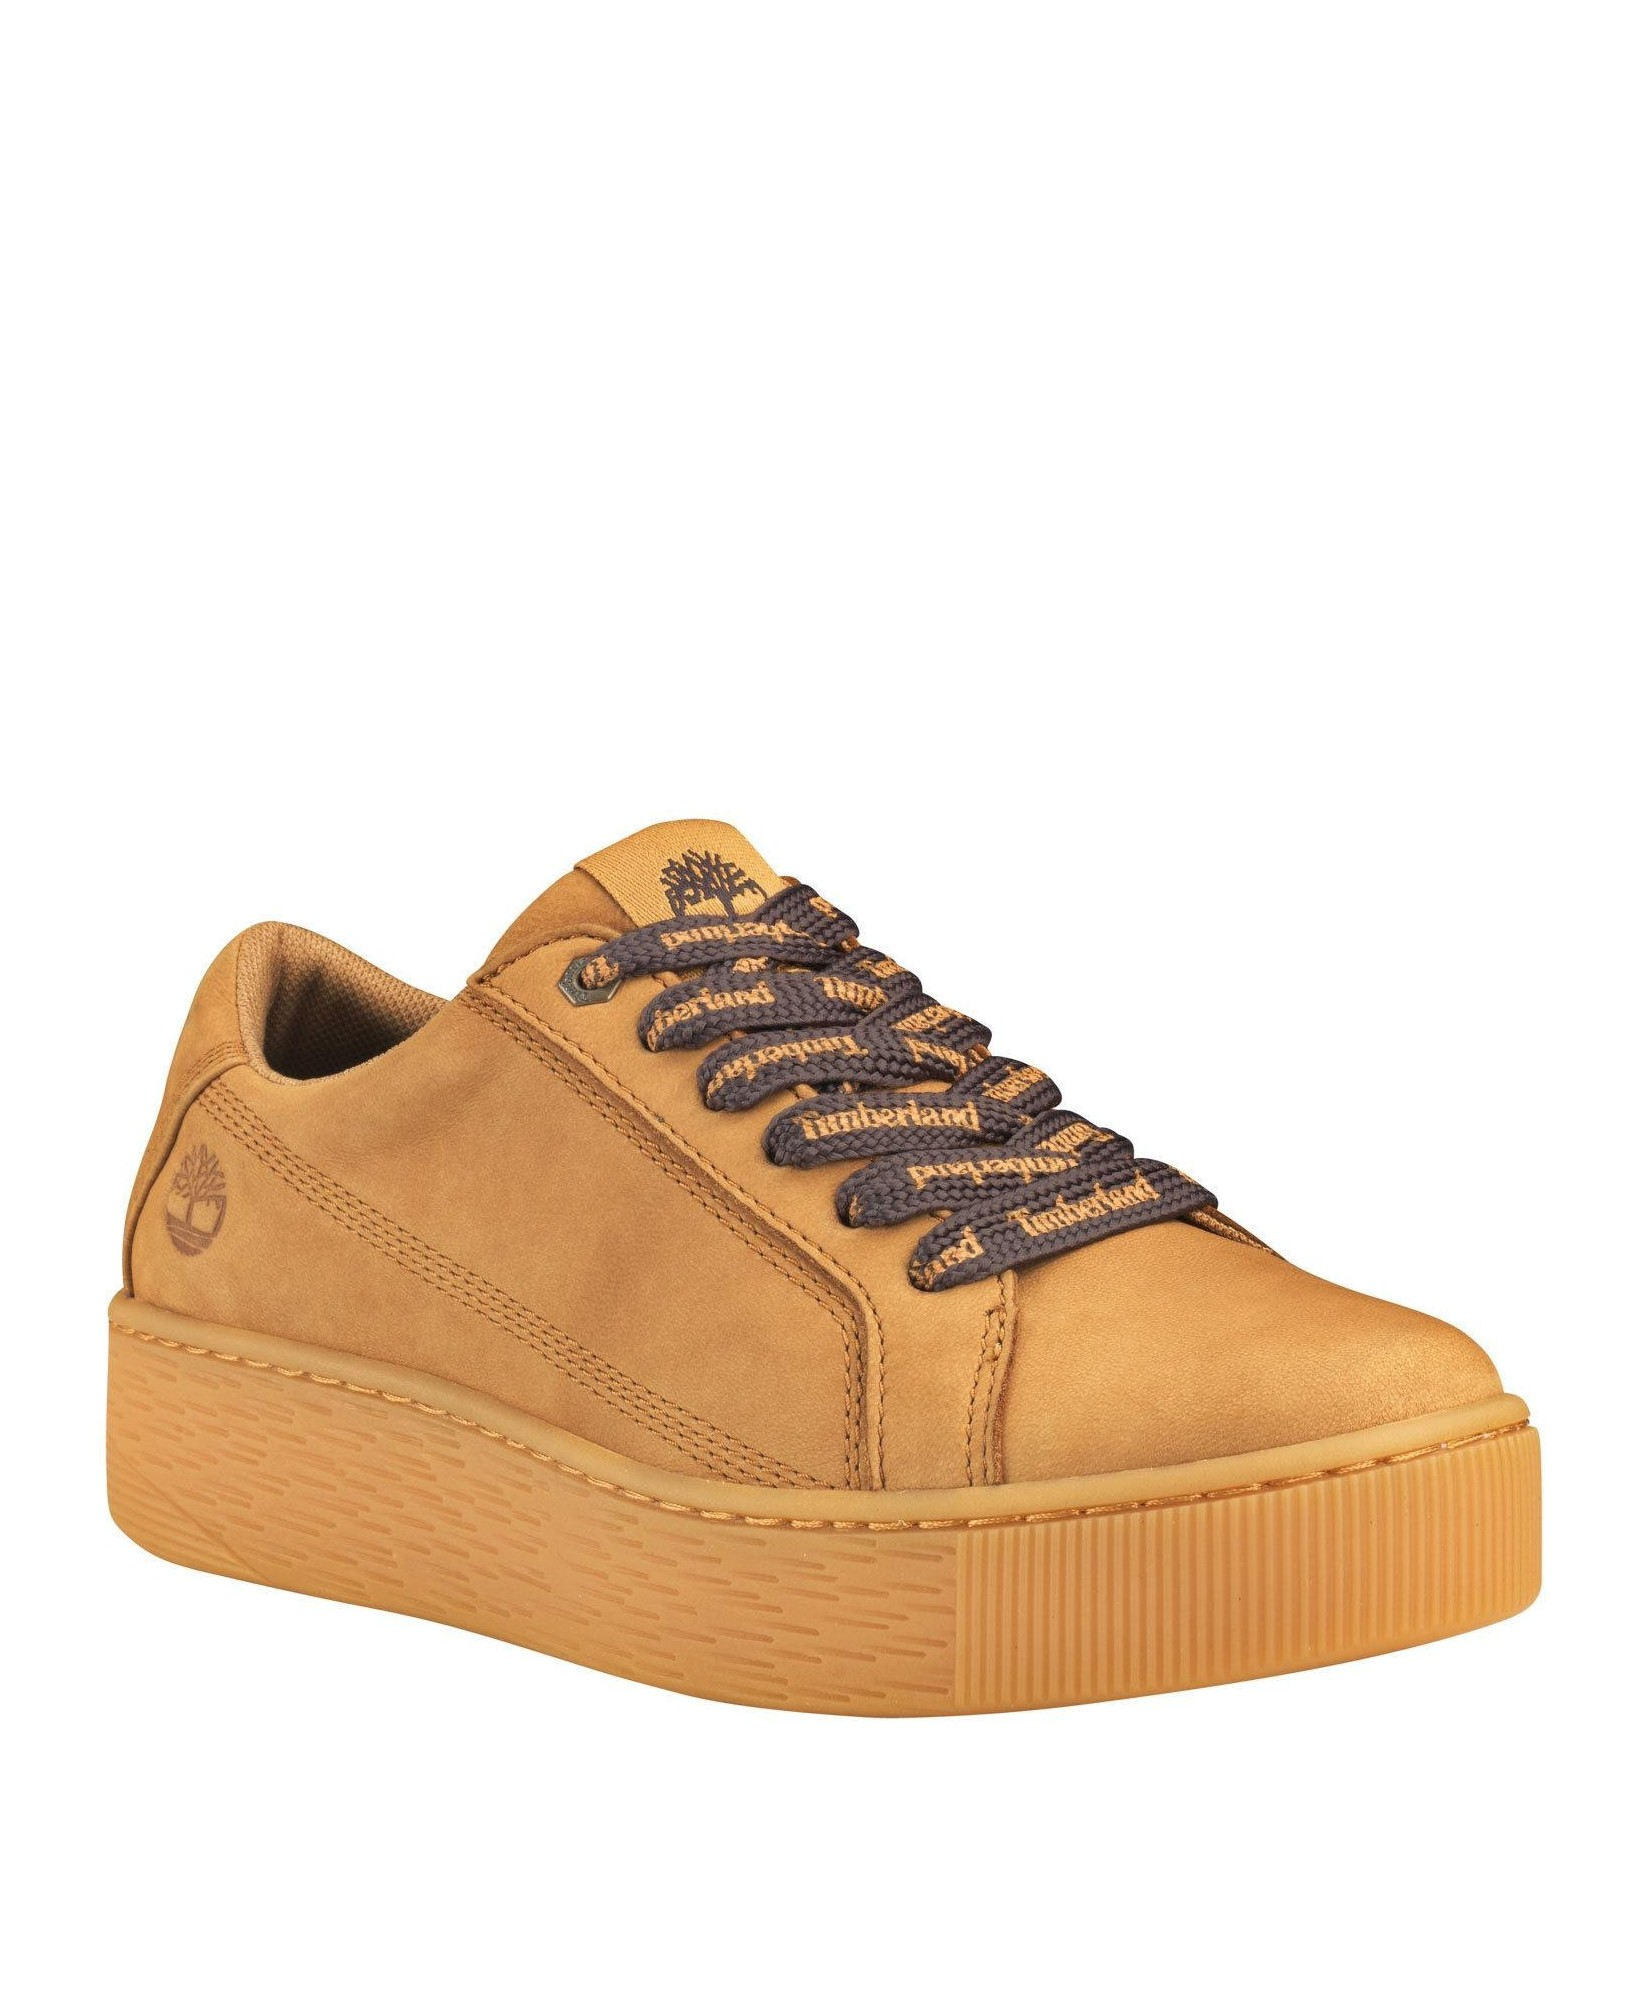 MARBLESE ZAPATO MUJER